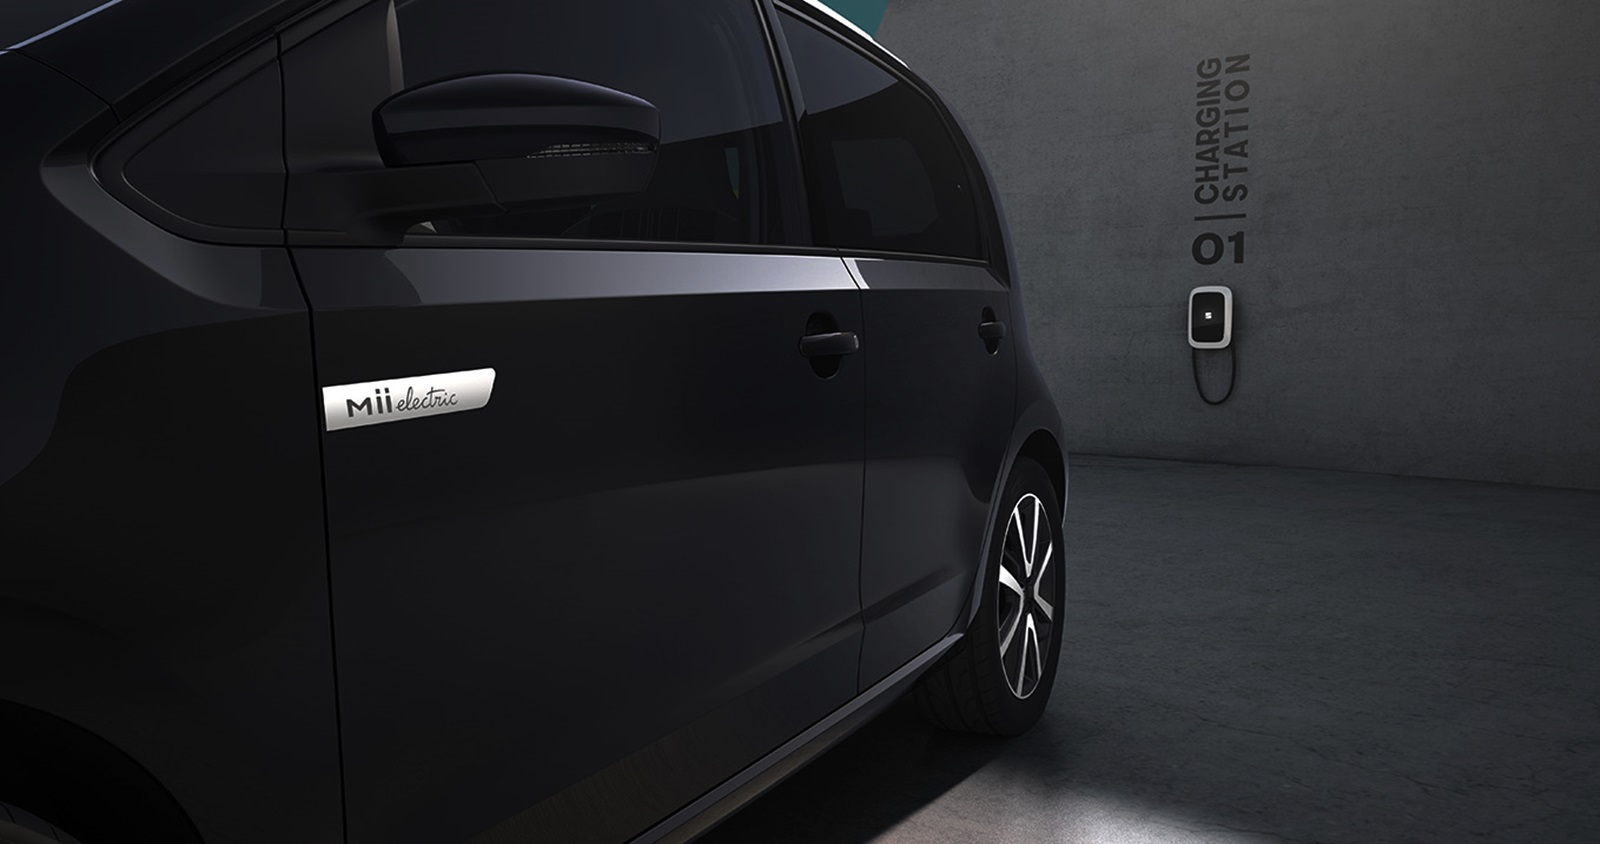 Detailed Look At The Electric Car From The Inside 02 Hq